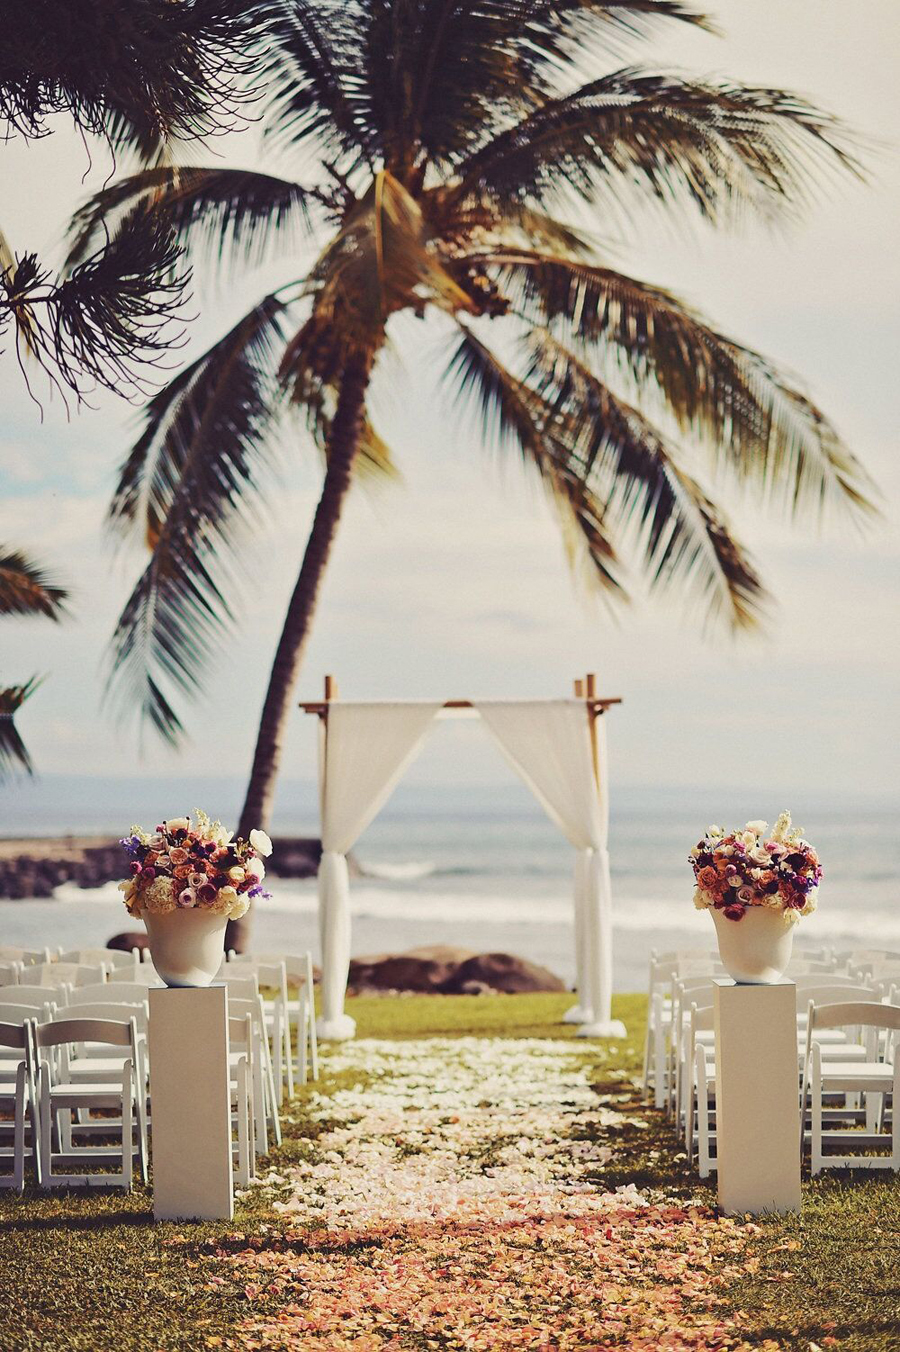 Ceremony, Ceremony Space, Ceremony Design, Maui, Hawaii